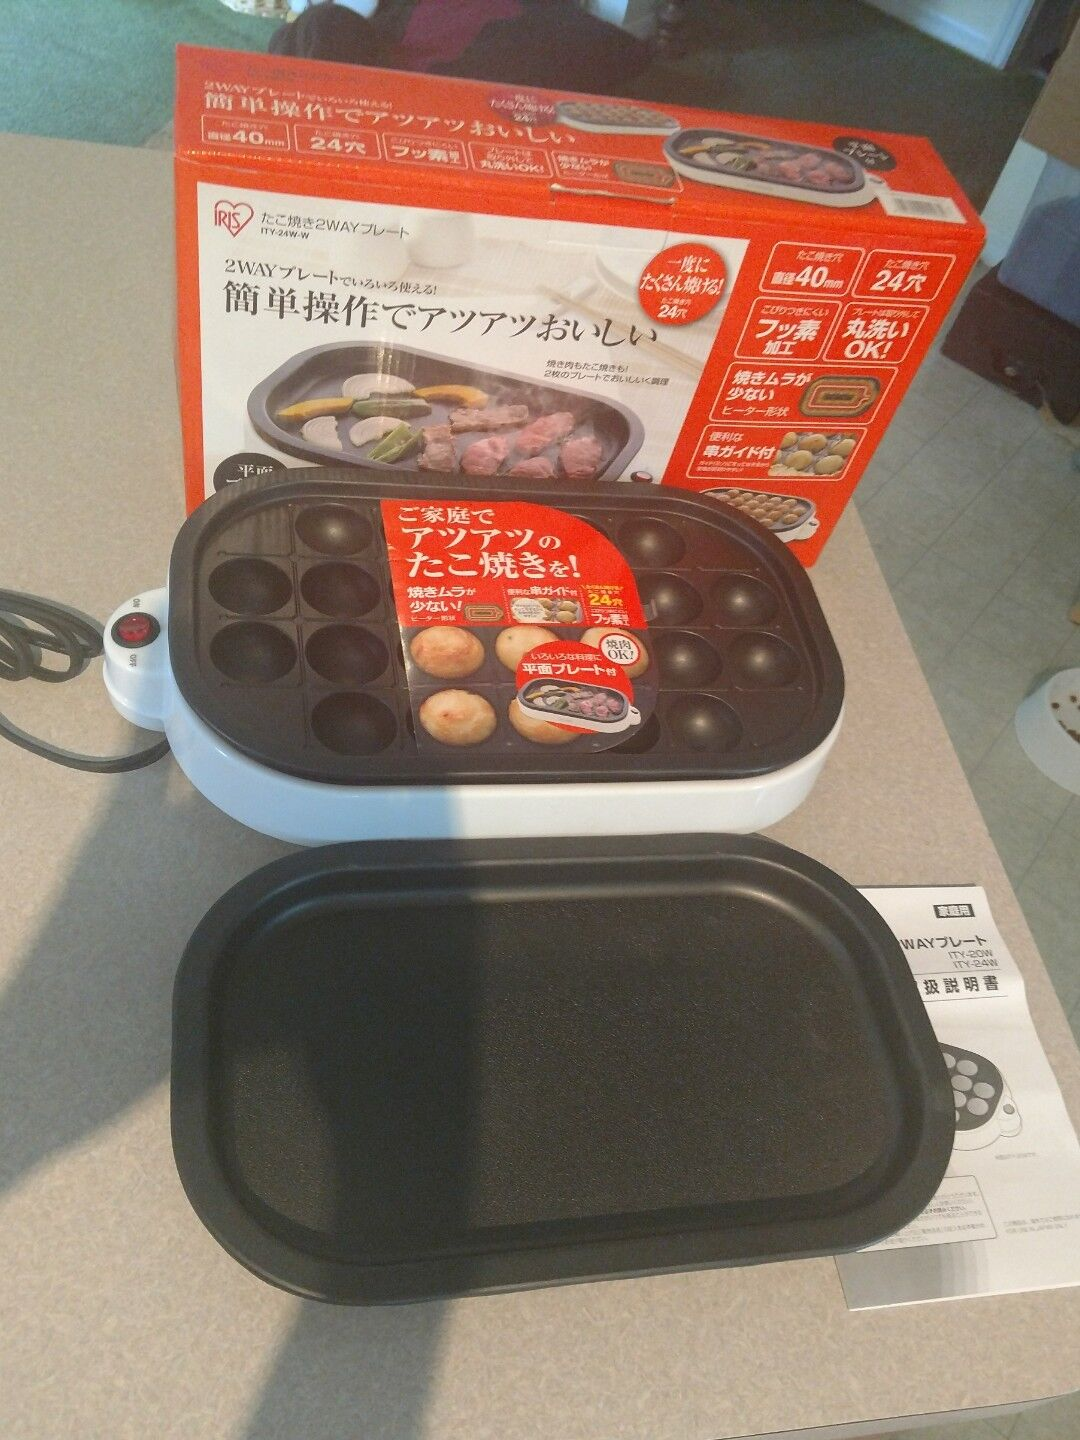 Iris takoyaki and BBQ 2WAY plate ITY-24W-W from japan